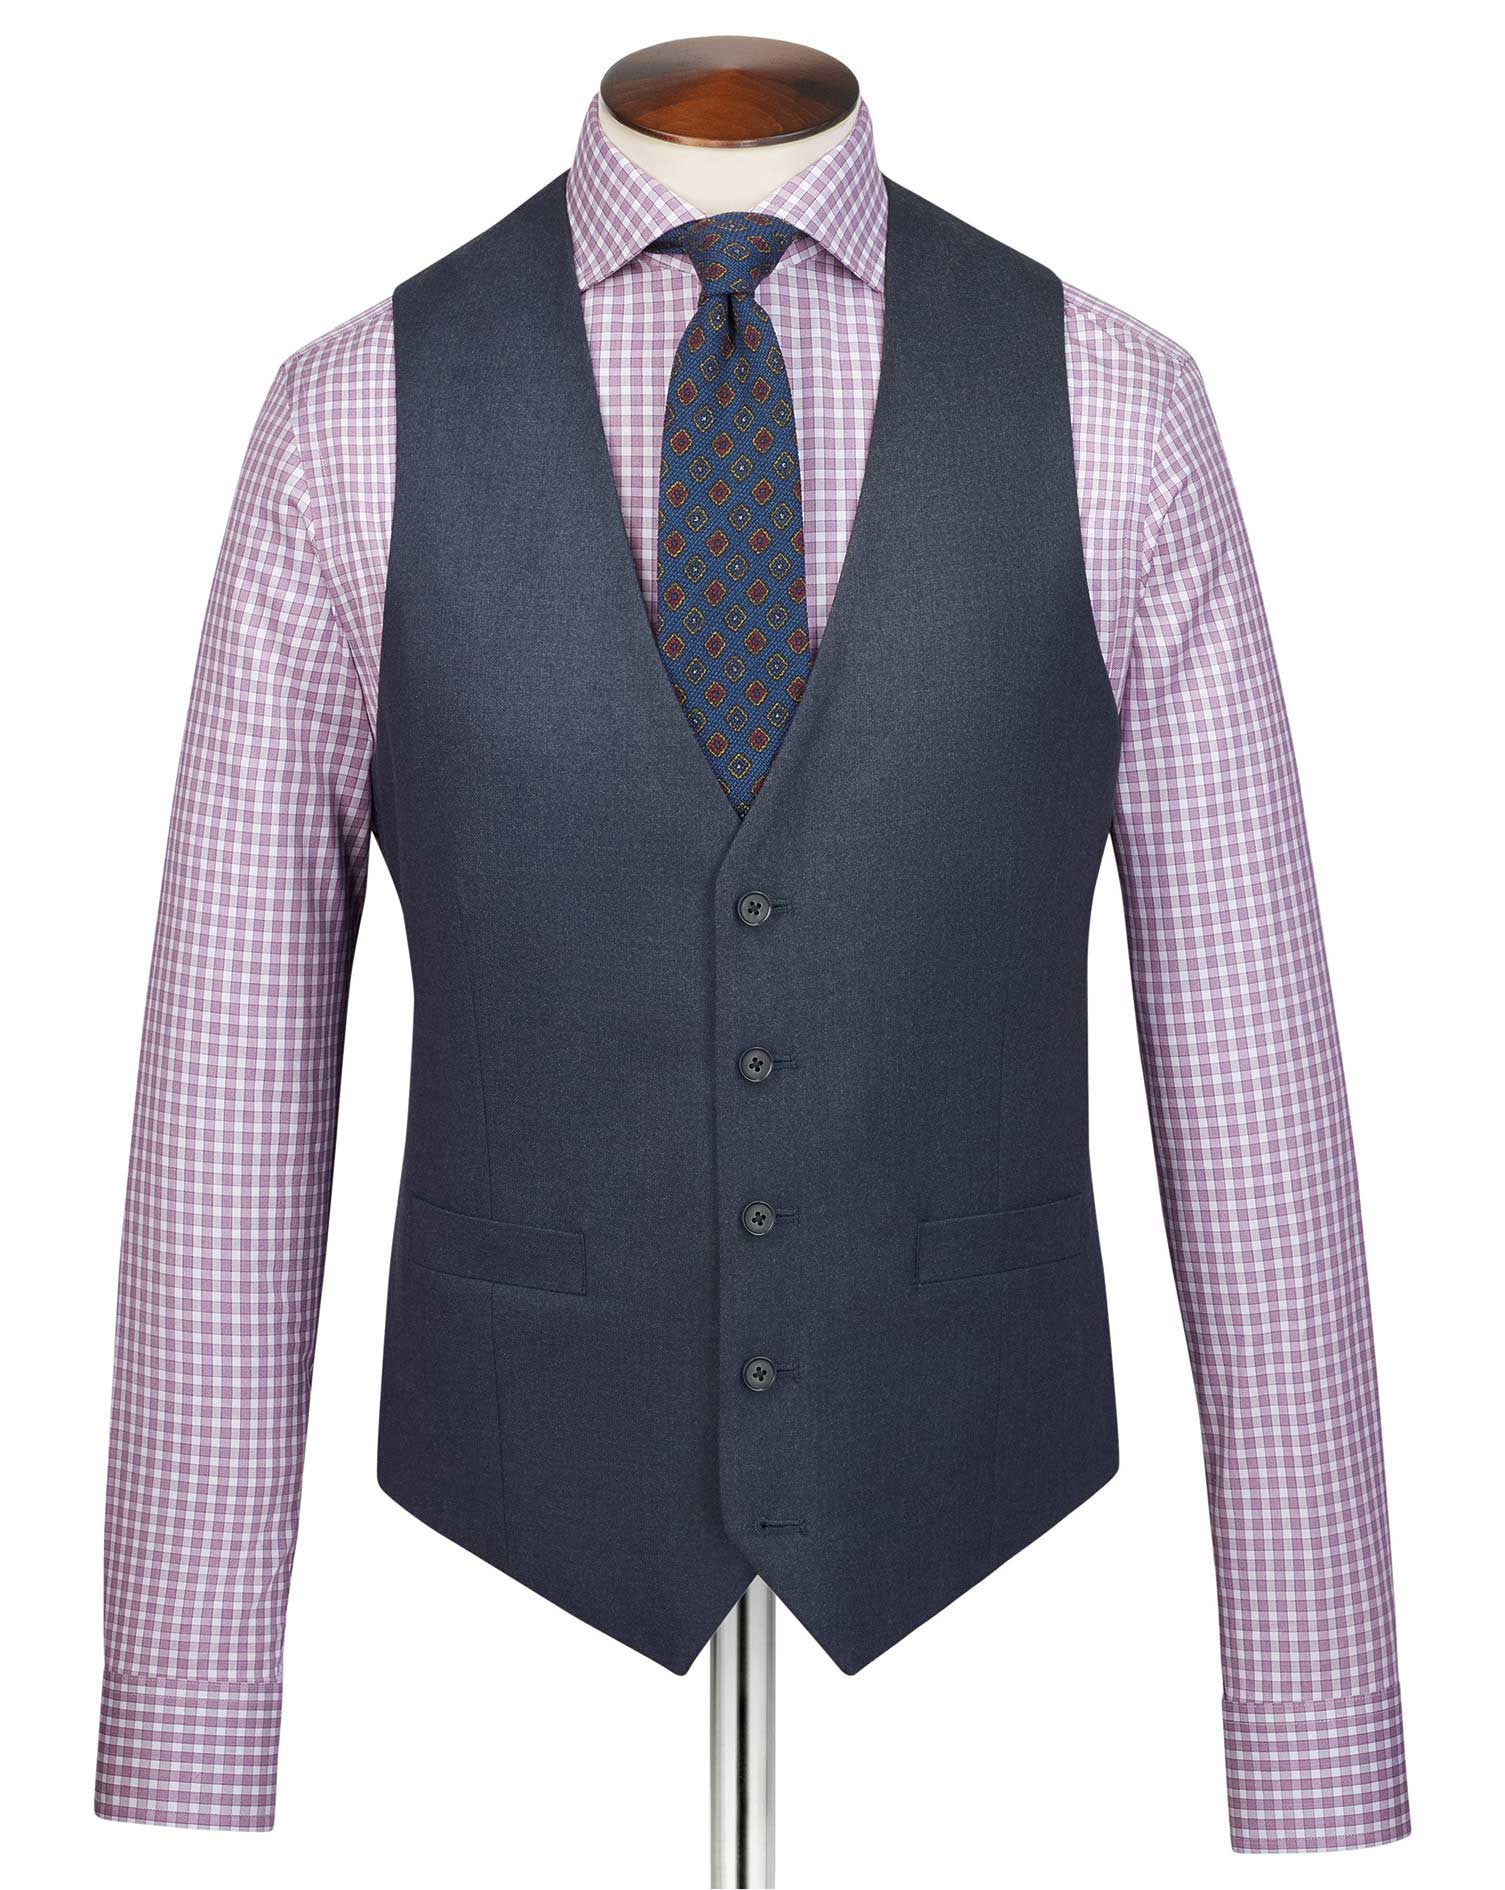 Image of Charles Tyrwhitt Airforce Blue Adjustable Fit Flannel Business Suit Wool Waistcoat Size w36 by Charles Tyrwhitt